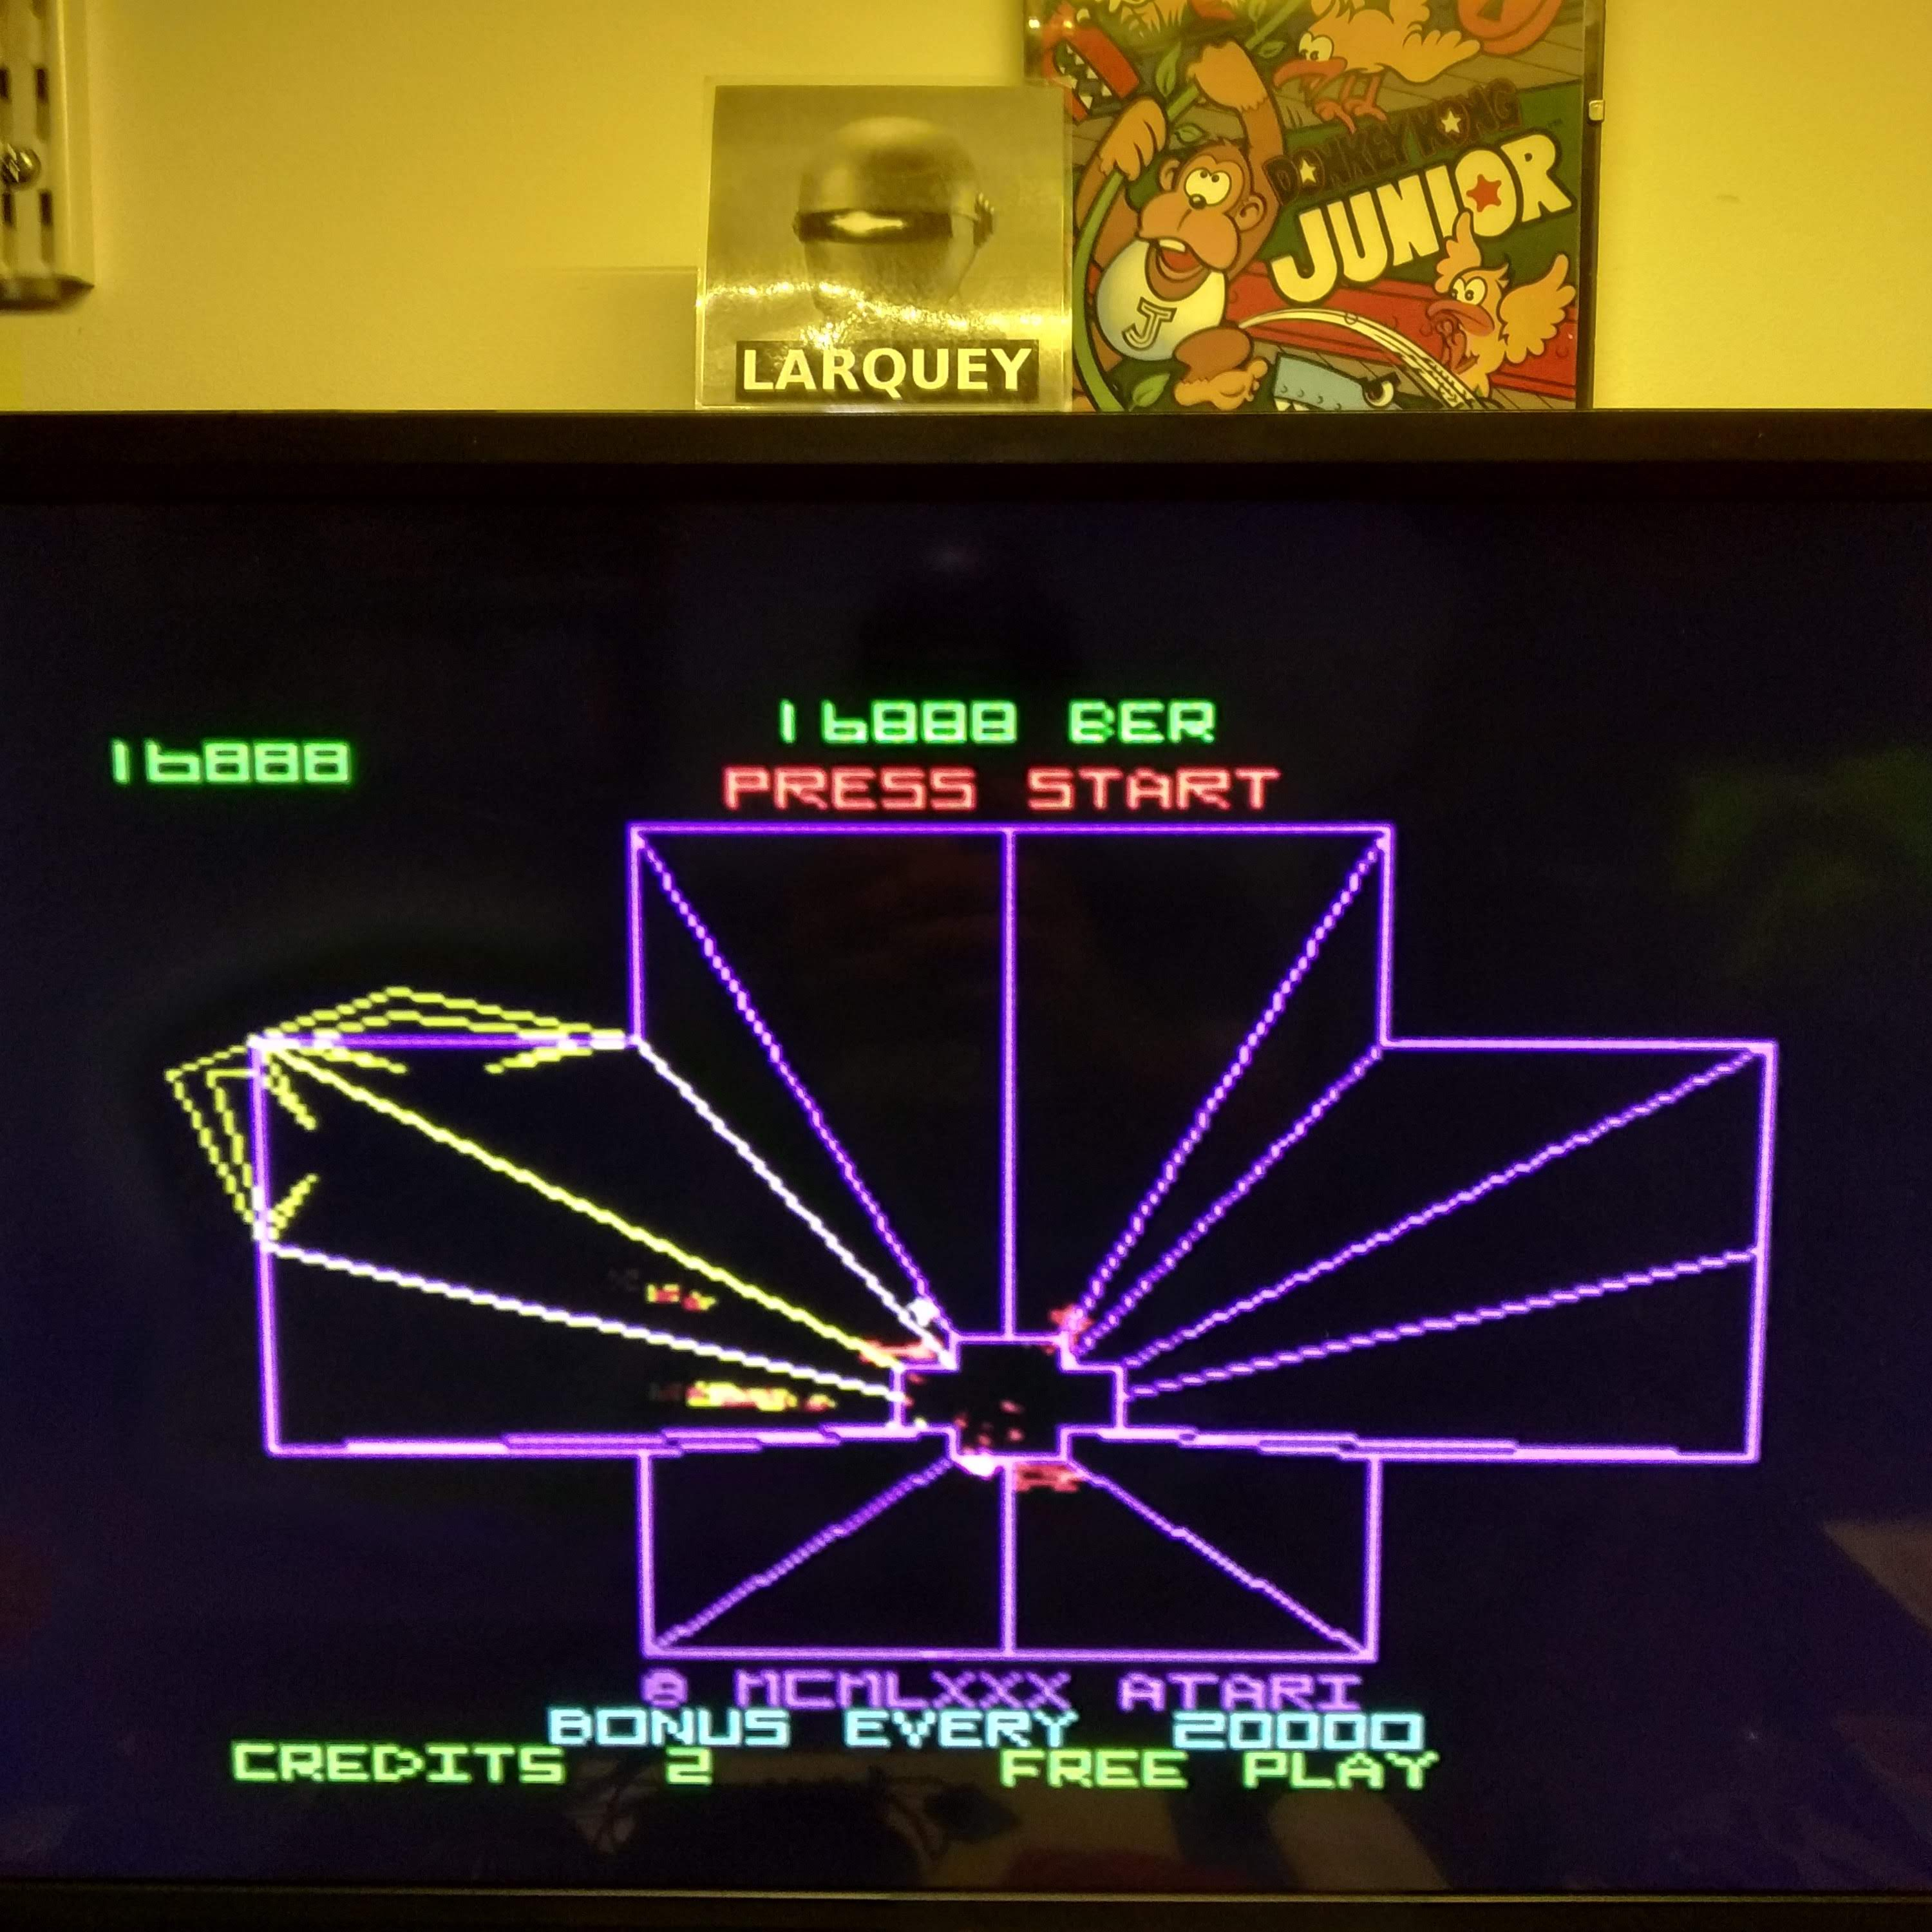 Larquey: Arcade`s Greatest Hits: The Atari Collection 1: Tempest (Playstation 1 Emulated) 16,888 points on 2020-08-15 13:51:52